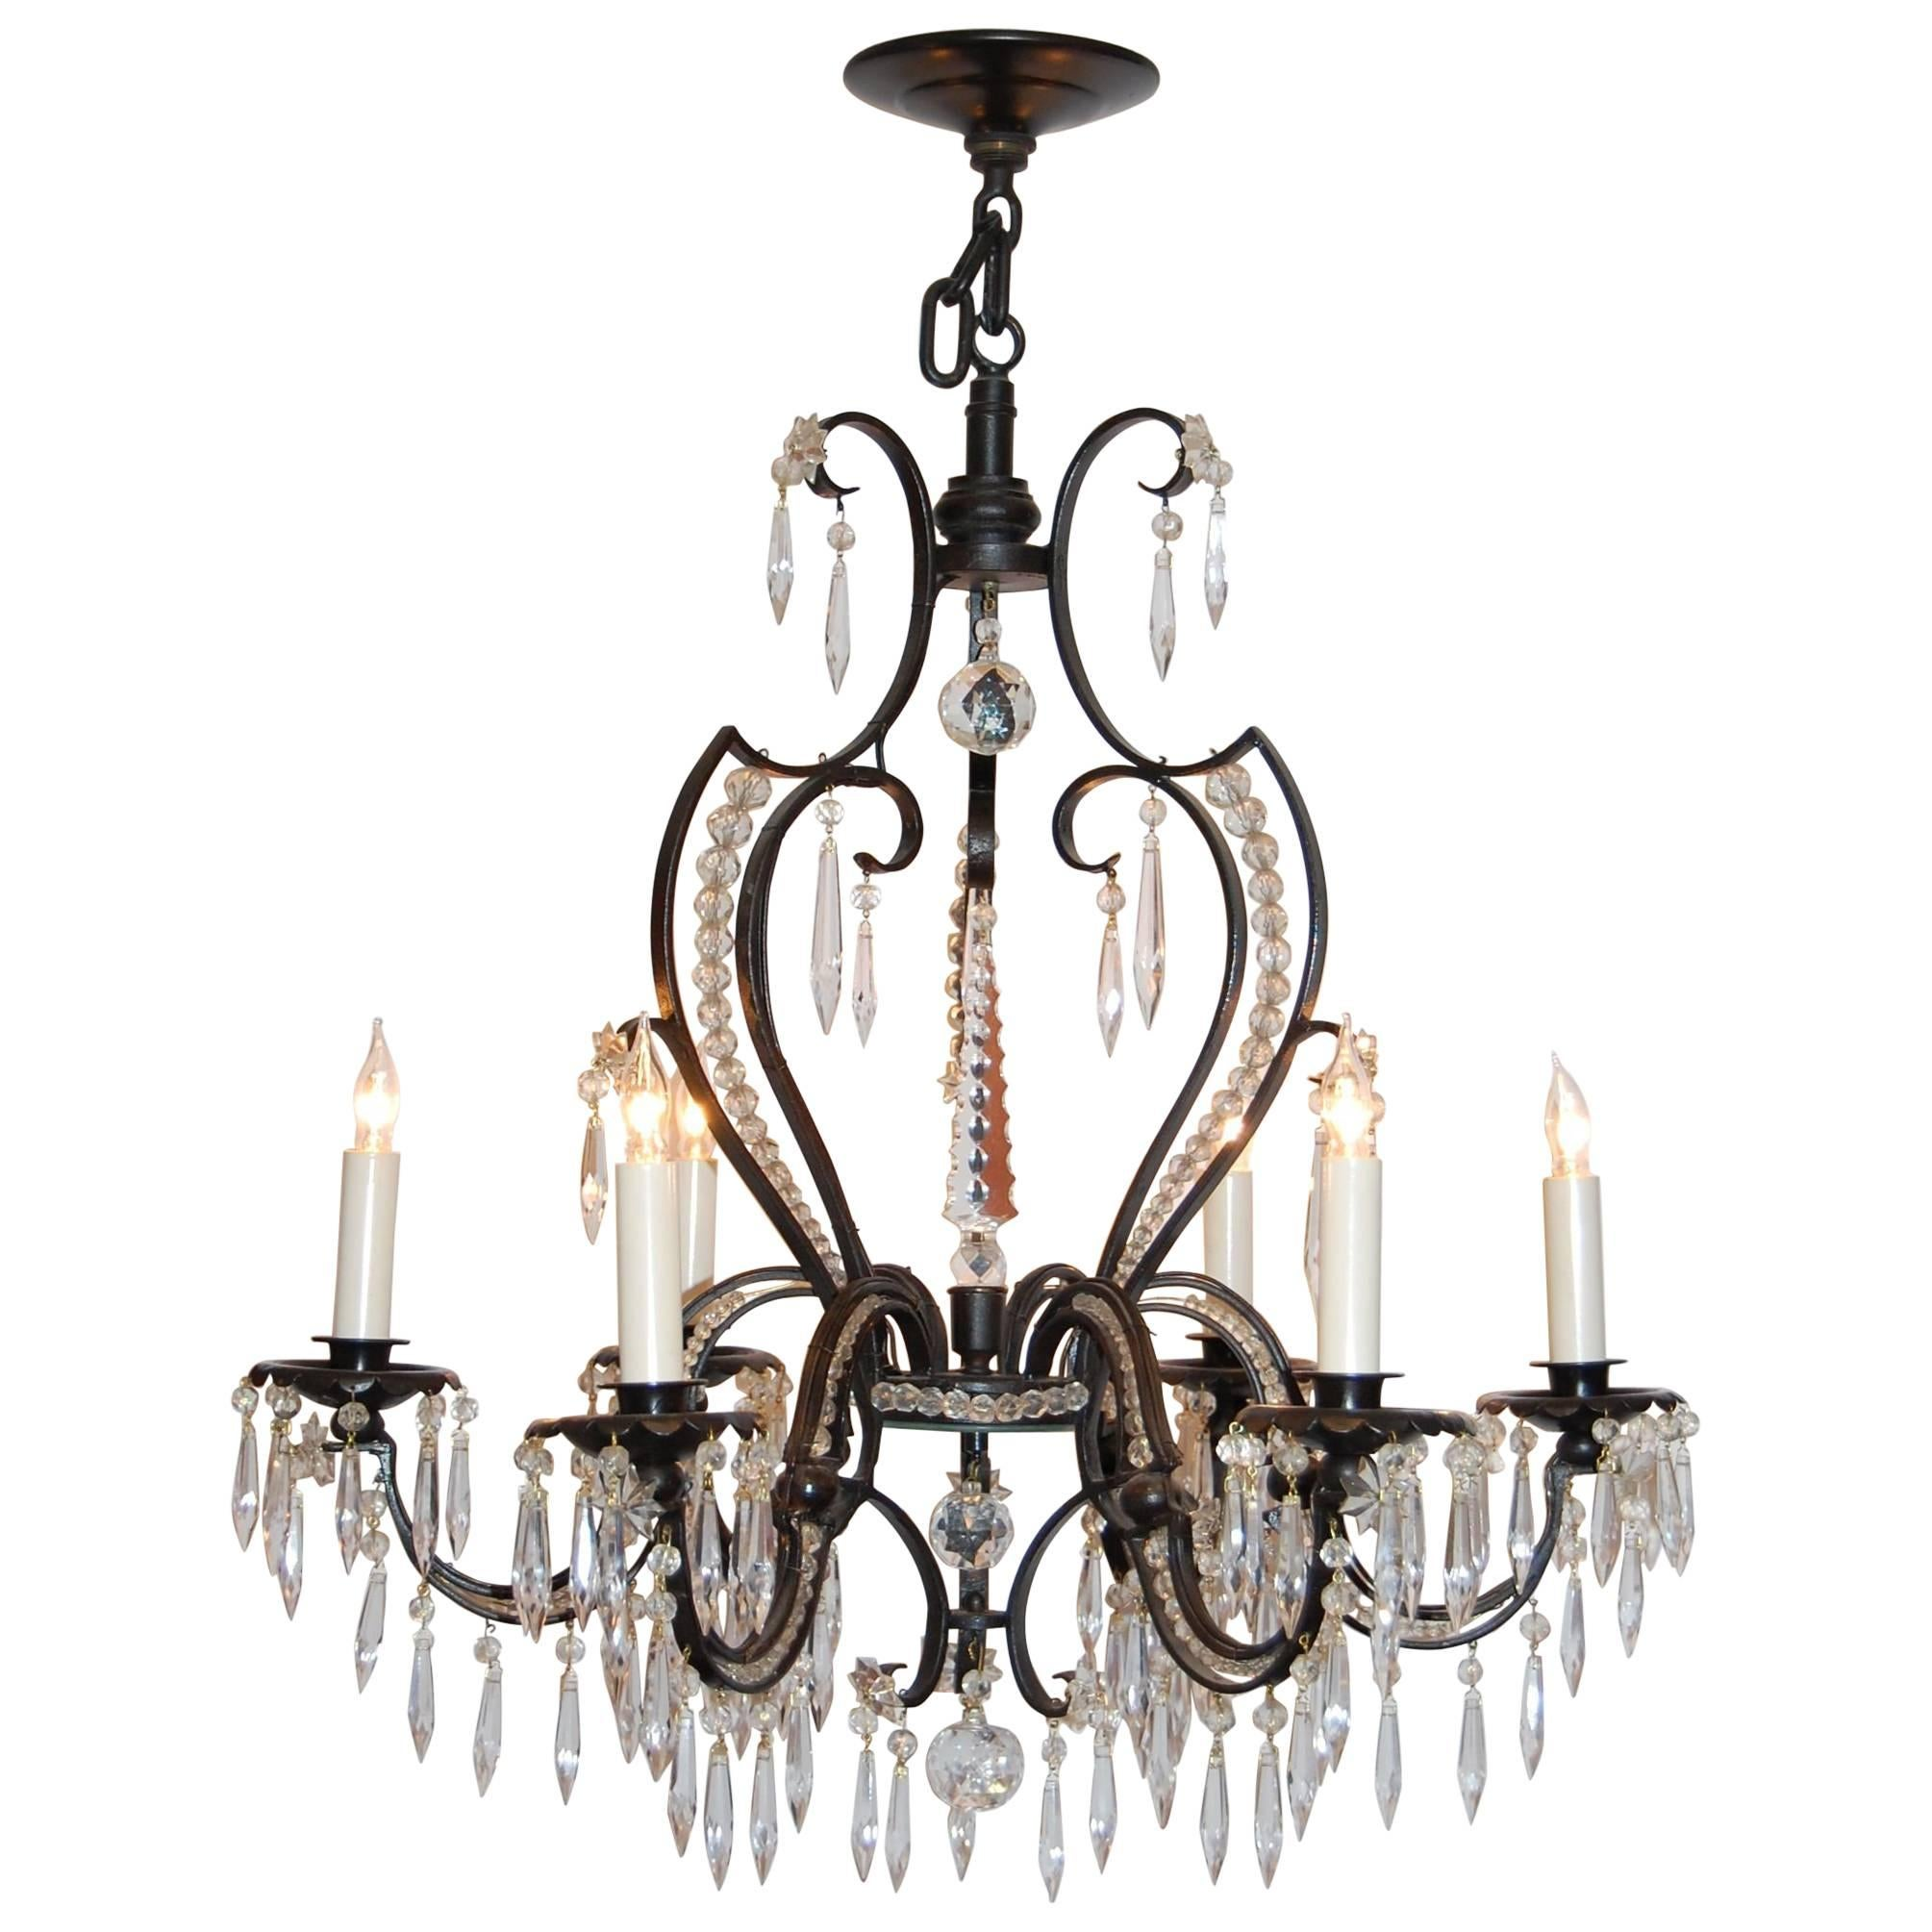 Iron and Crystal Six-Light Chandelier, circa 1920s-1930s